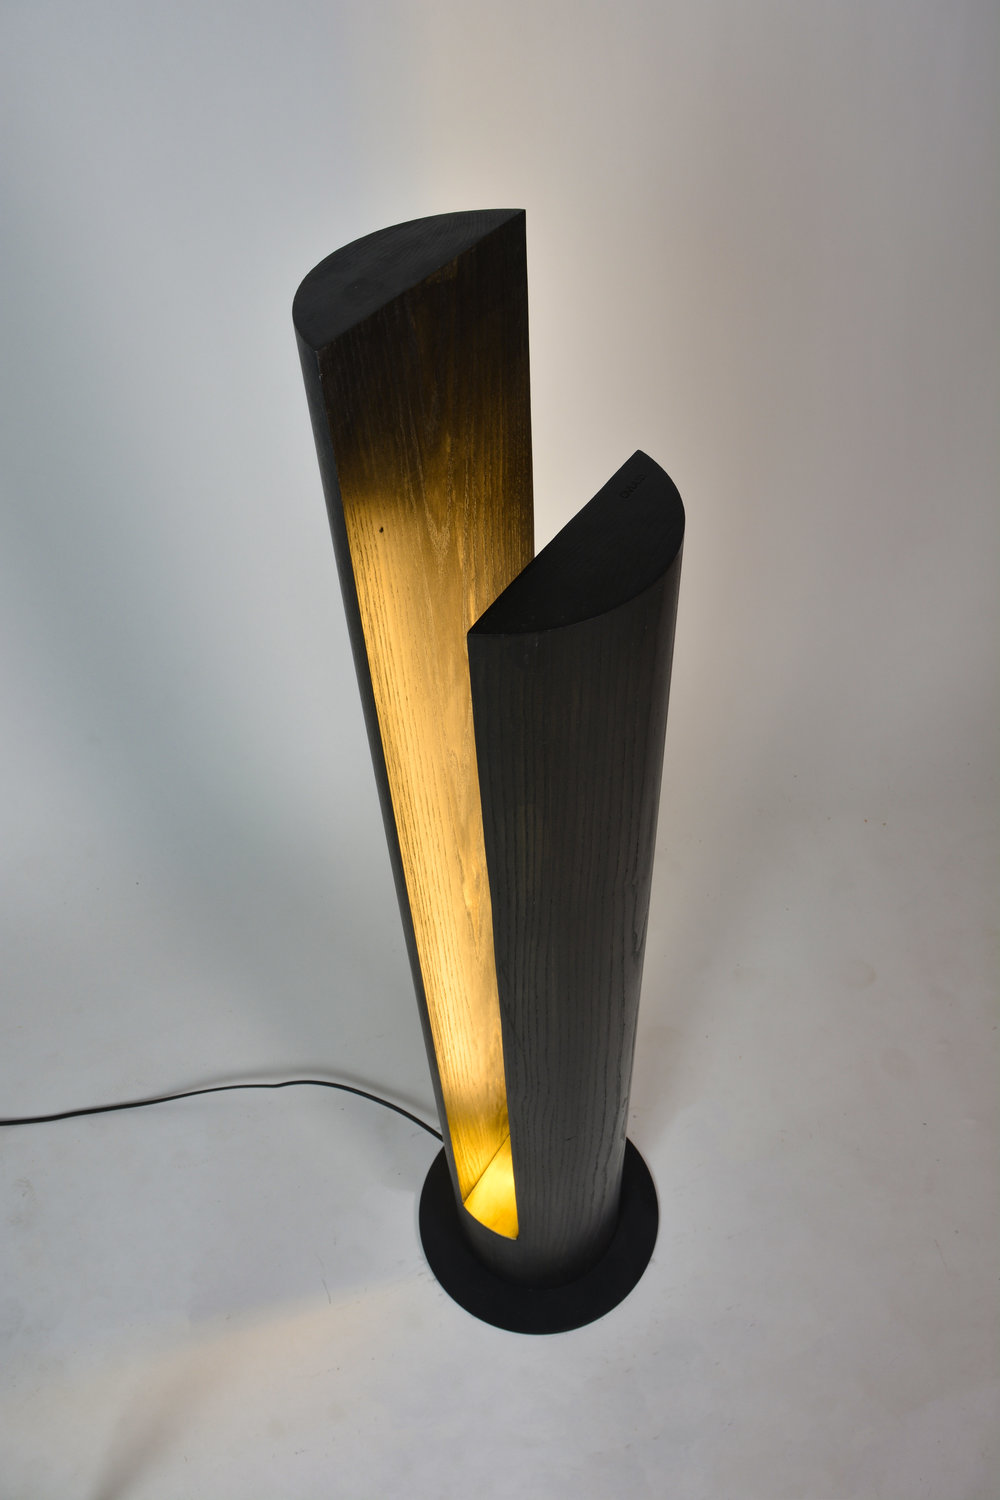 OVUUD - Slot Floor Lamp (DSC_2471 edited).jpg